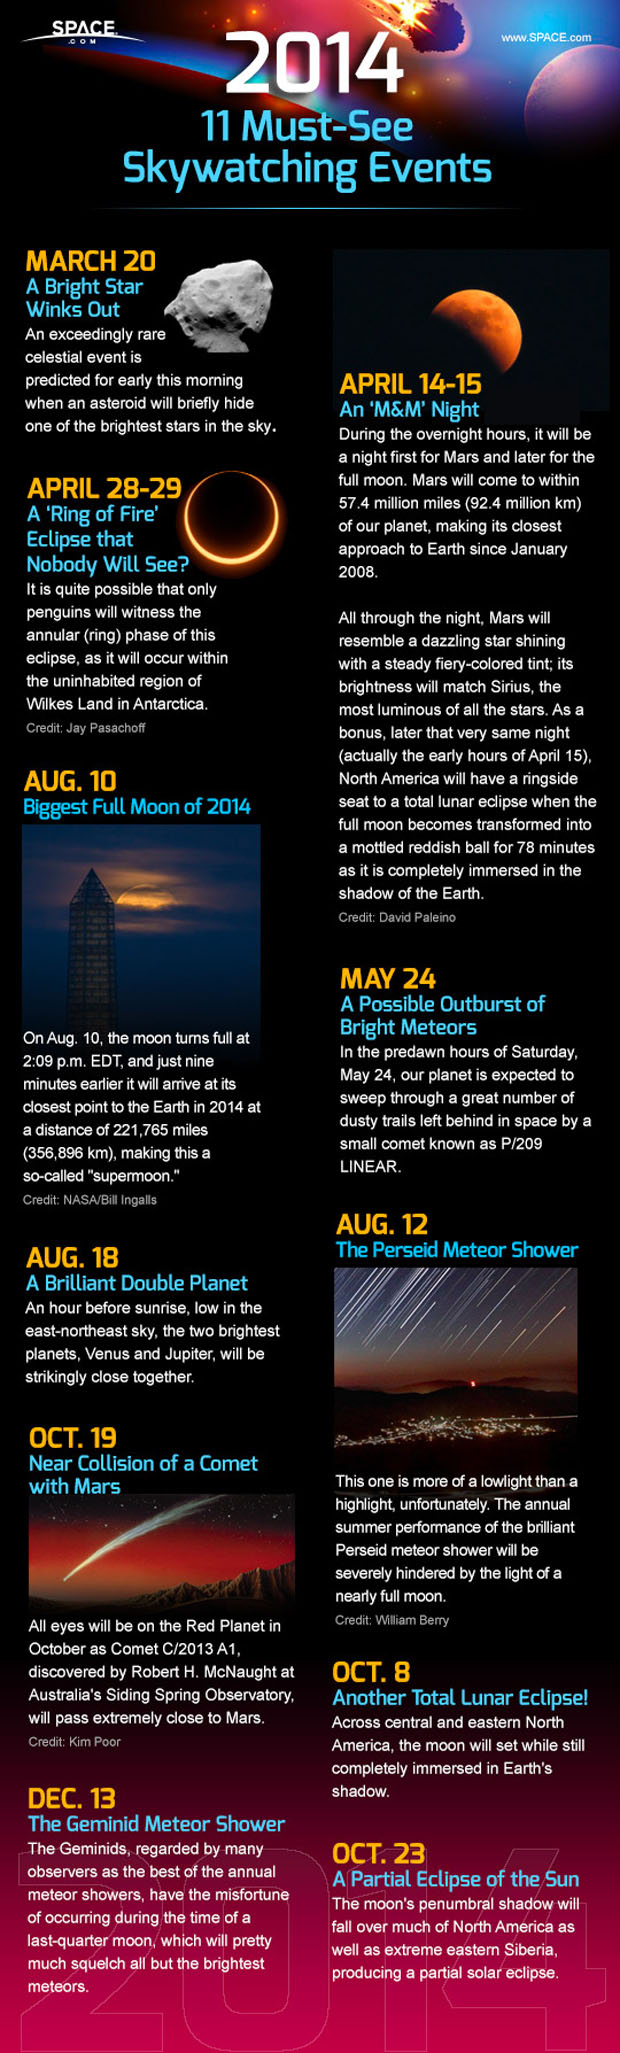 The Night Sky in 2014: 11 Must-See Celestial Events (Infographic)